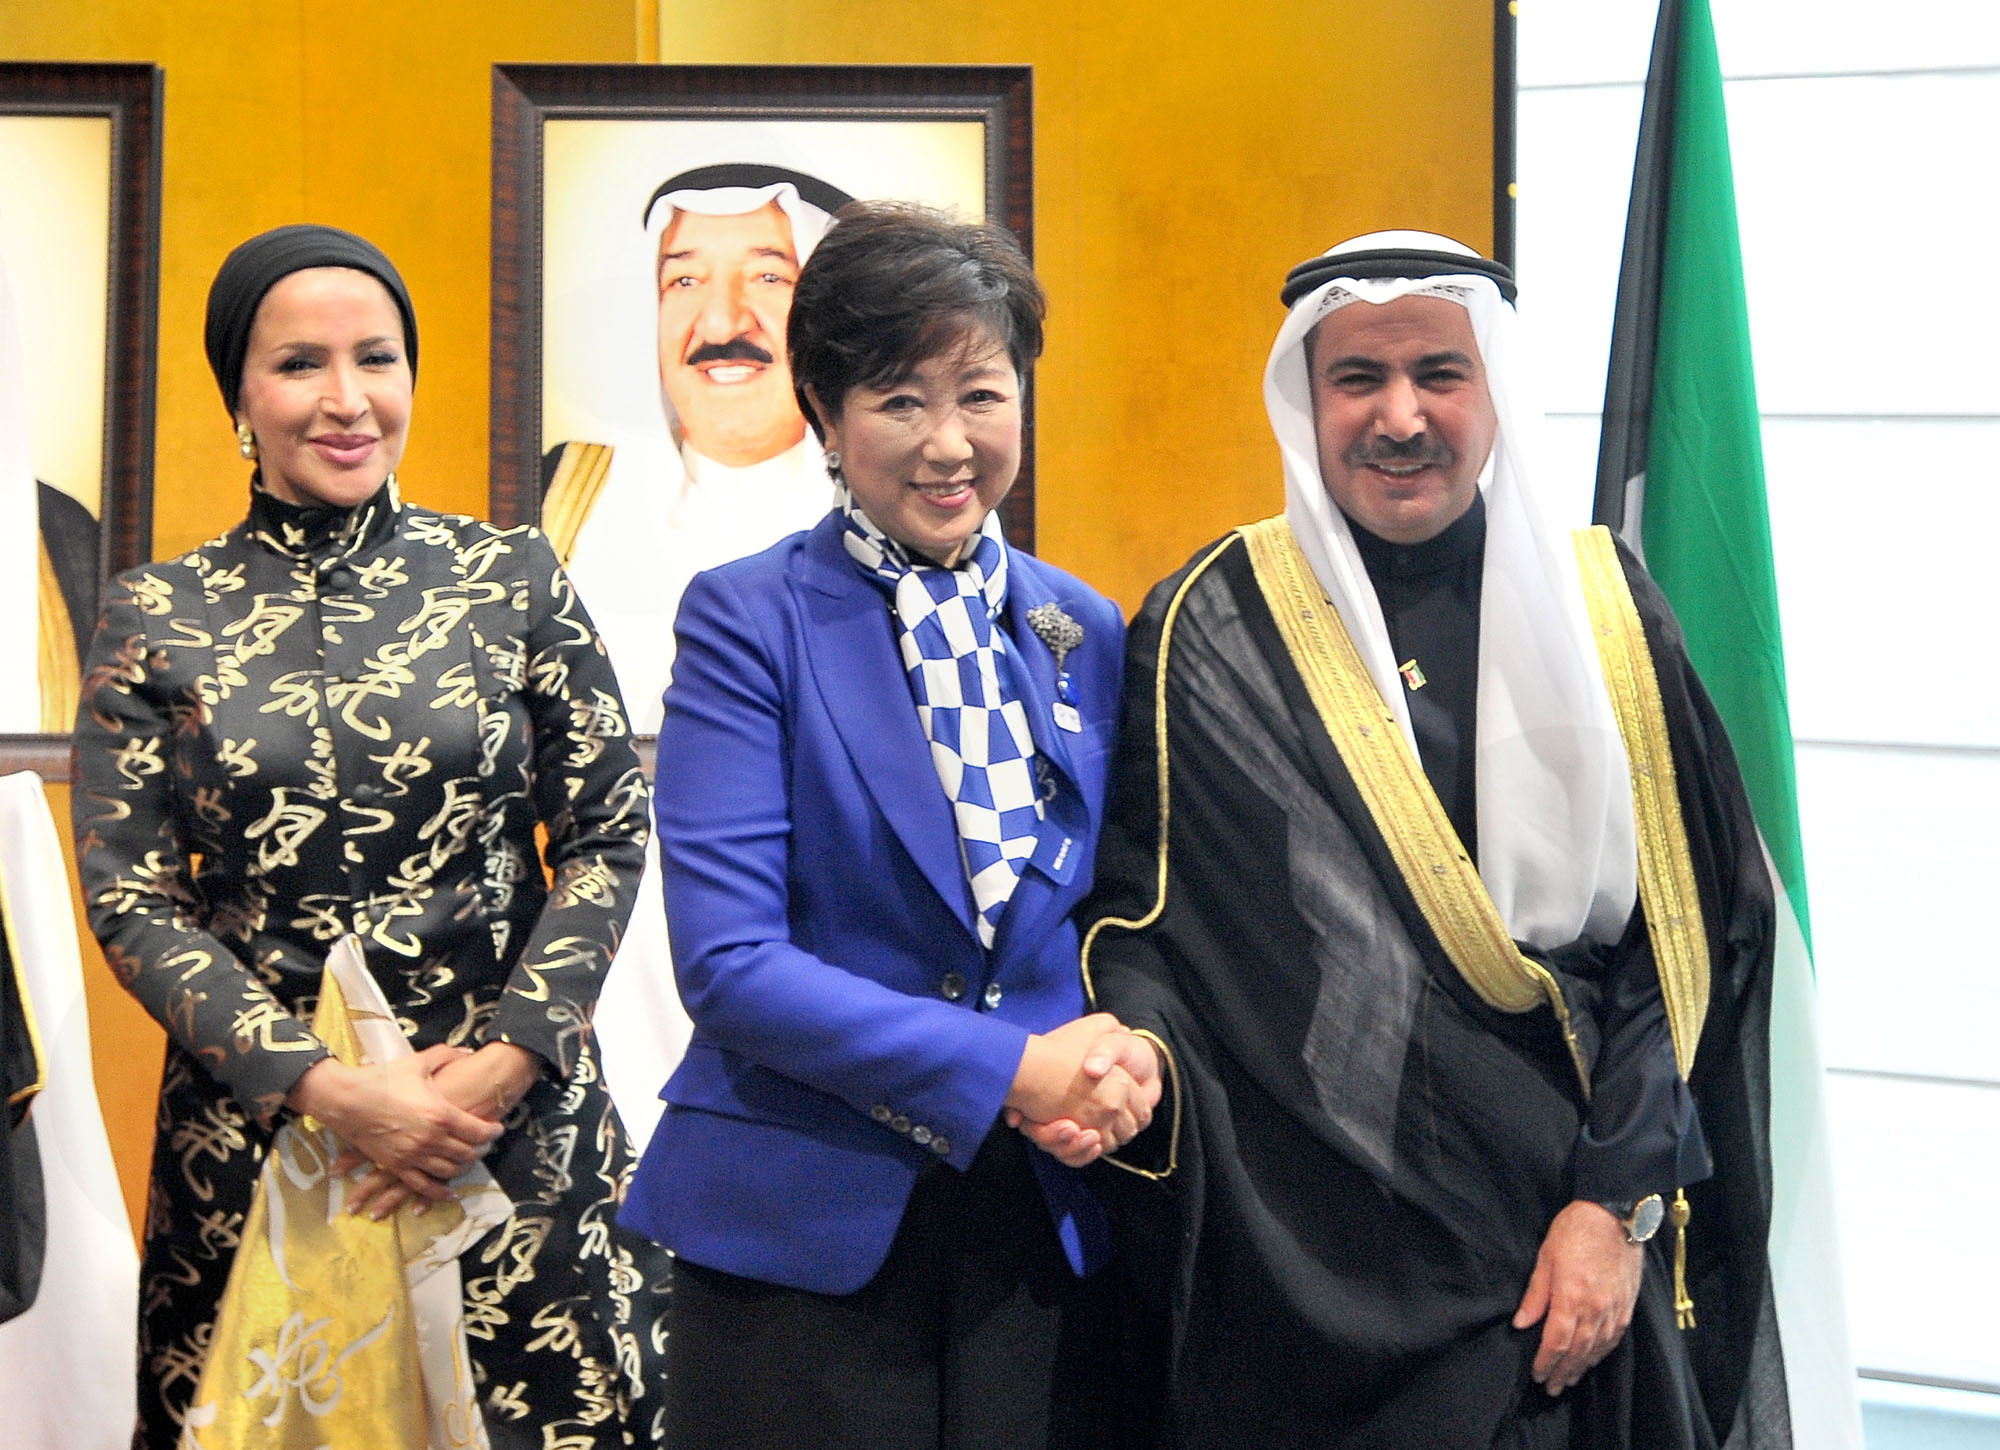 Kuwait's Ambassador Abdul Rahman Humood Al-Otaibi (right) and his wife Jamila (left) welcome Tokyo Gov. Yuriko Koike to a reception celebrating the 56th Kuwait national day and 26th anniversary of the liberation of Kuwait at the Palace Hotel on Feb. 23. | YOSHIAKI MIURA